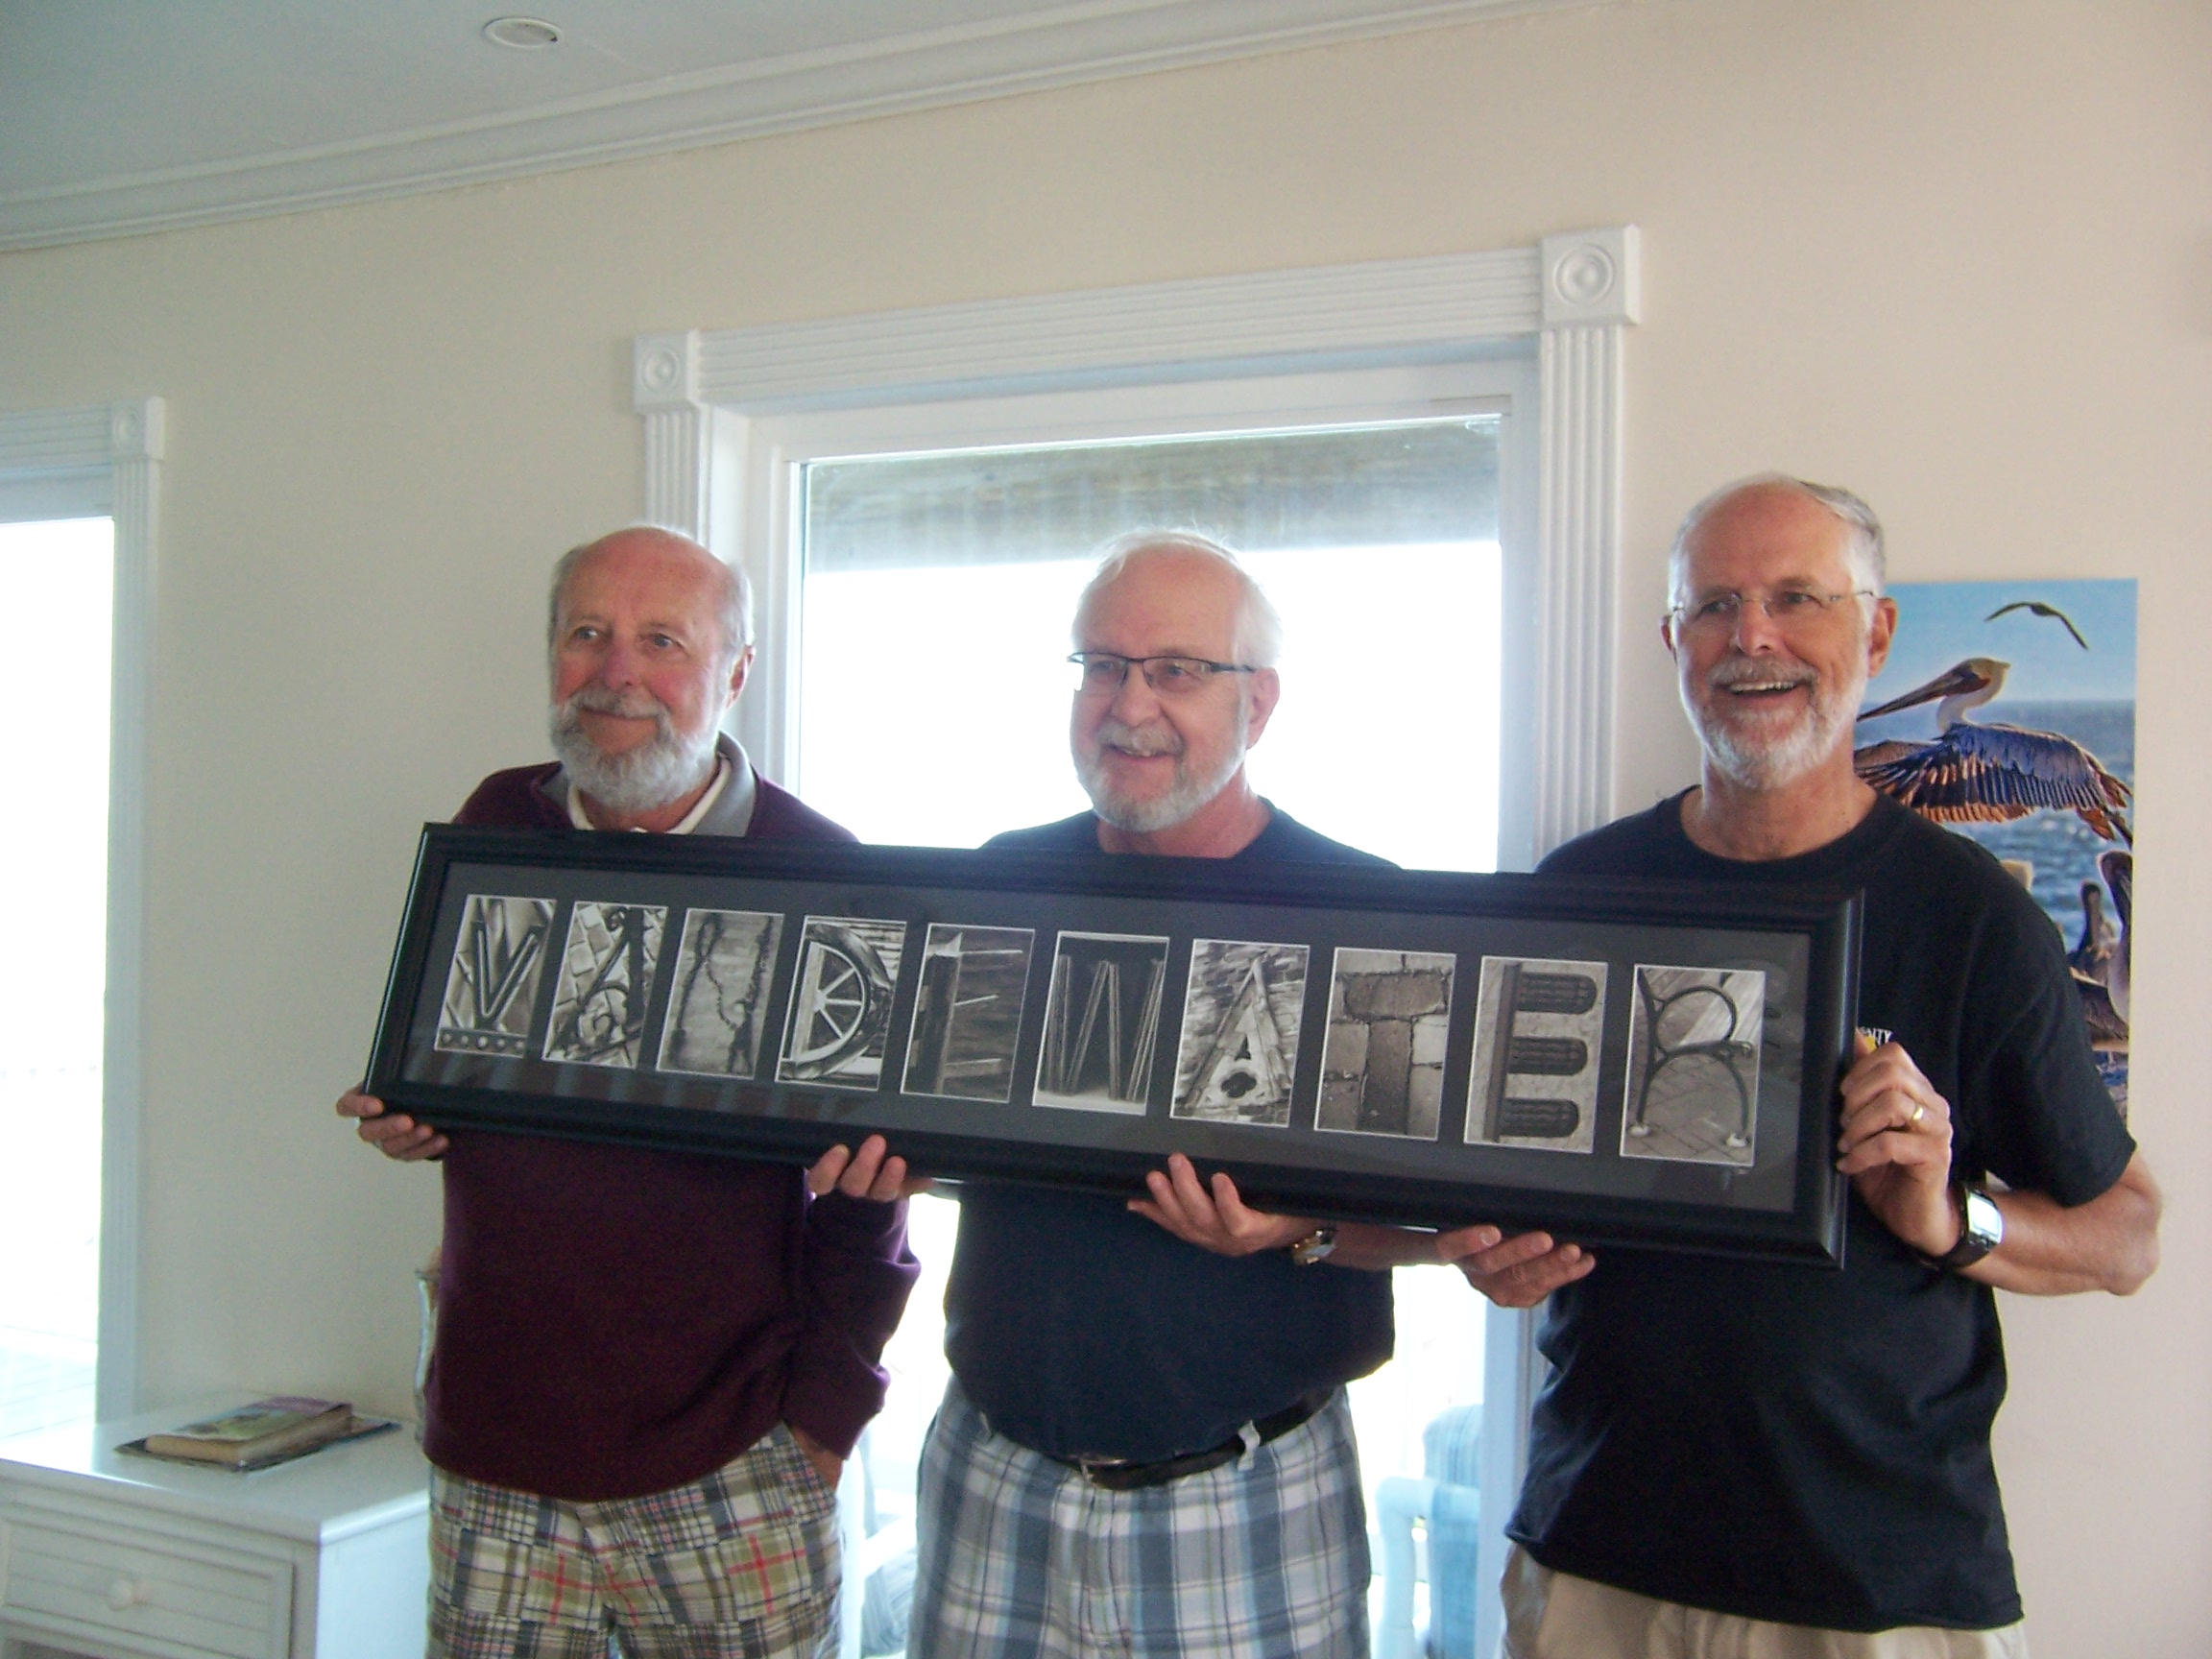 With fondest remembrance of our brother reunion last year in St Augustine.